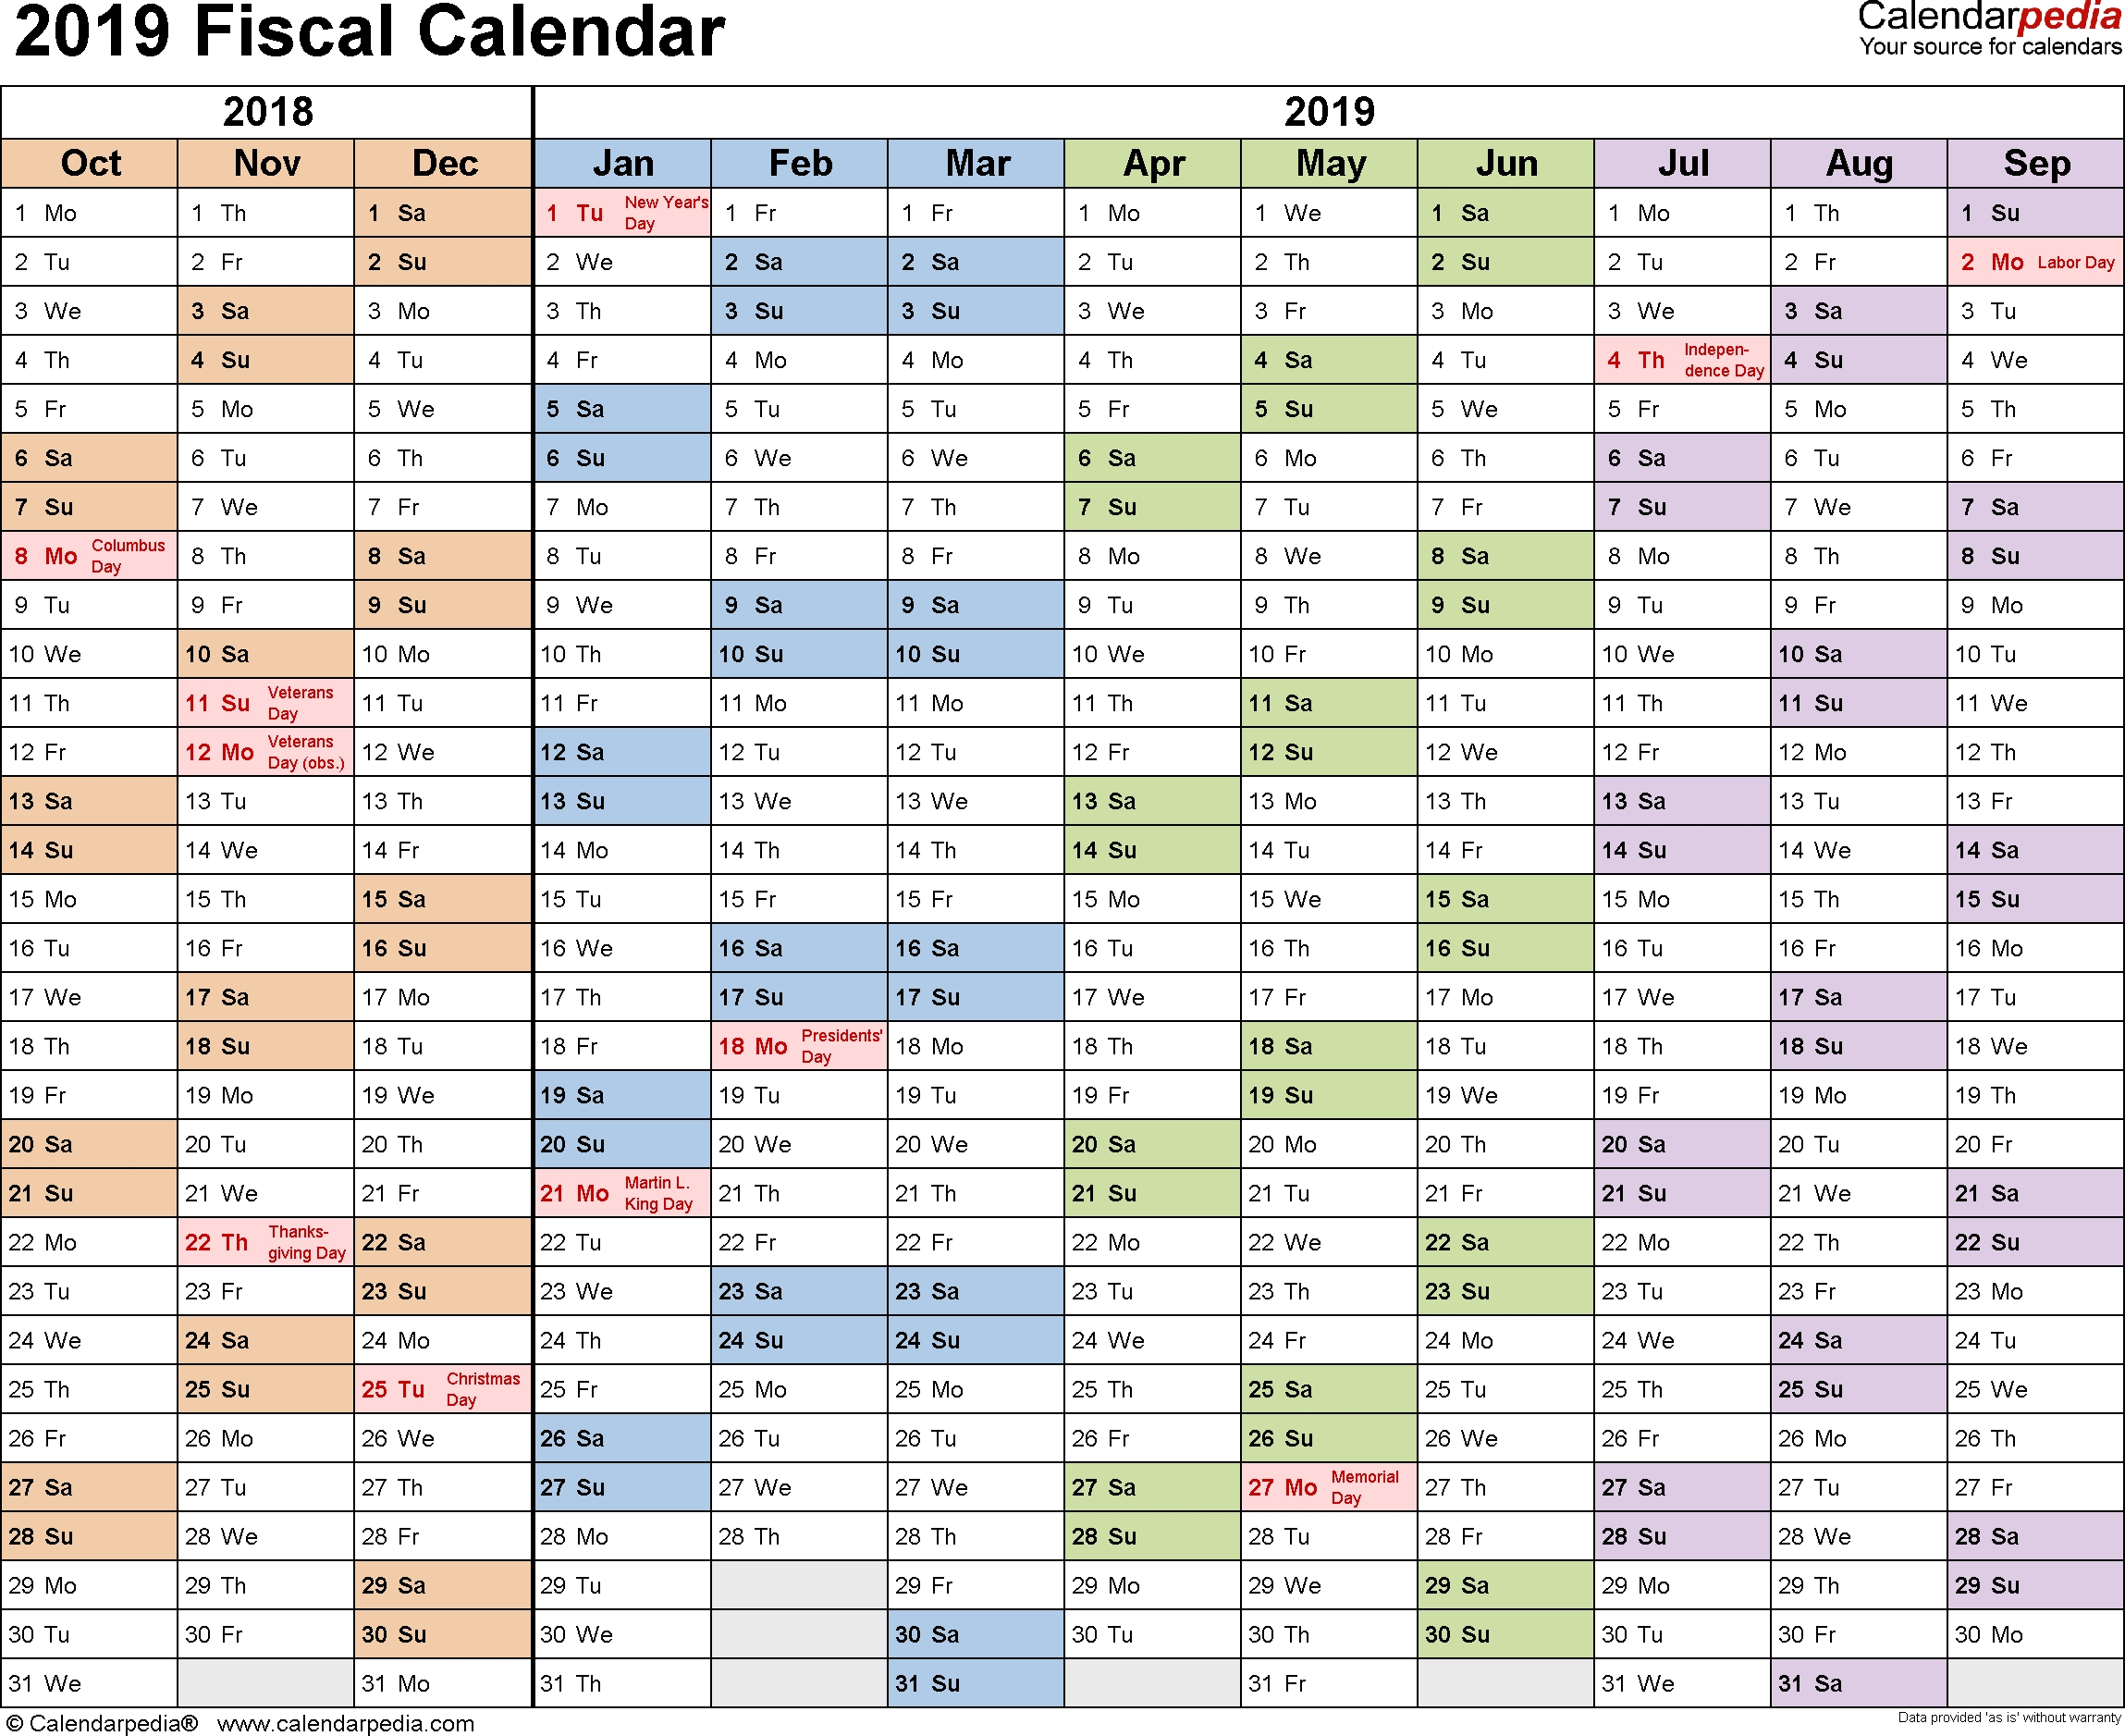 Fiscal Calendars 2019 - Free Printable Word Templates regarding Us Financial Calendar Week Numbers